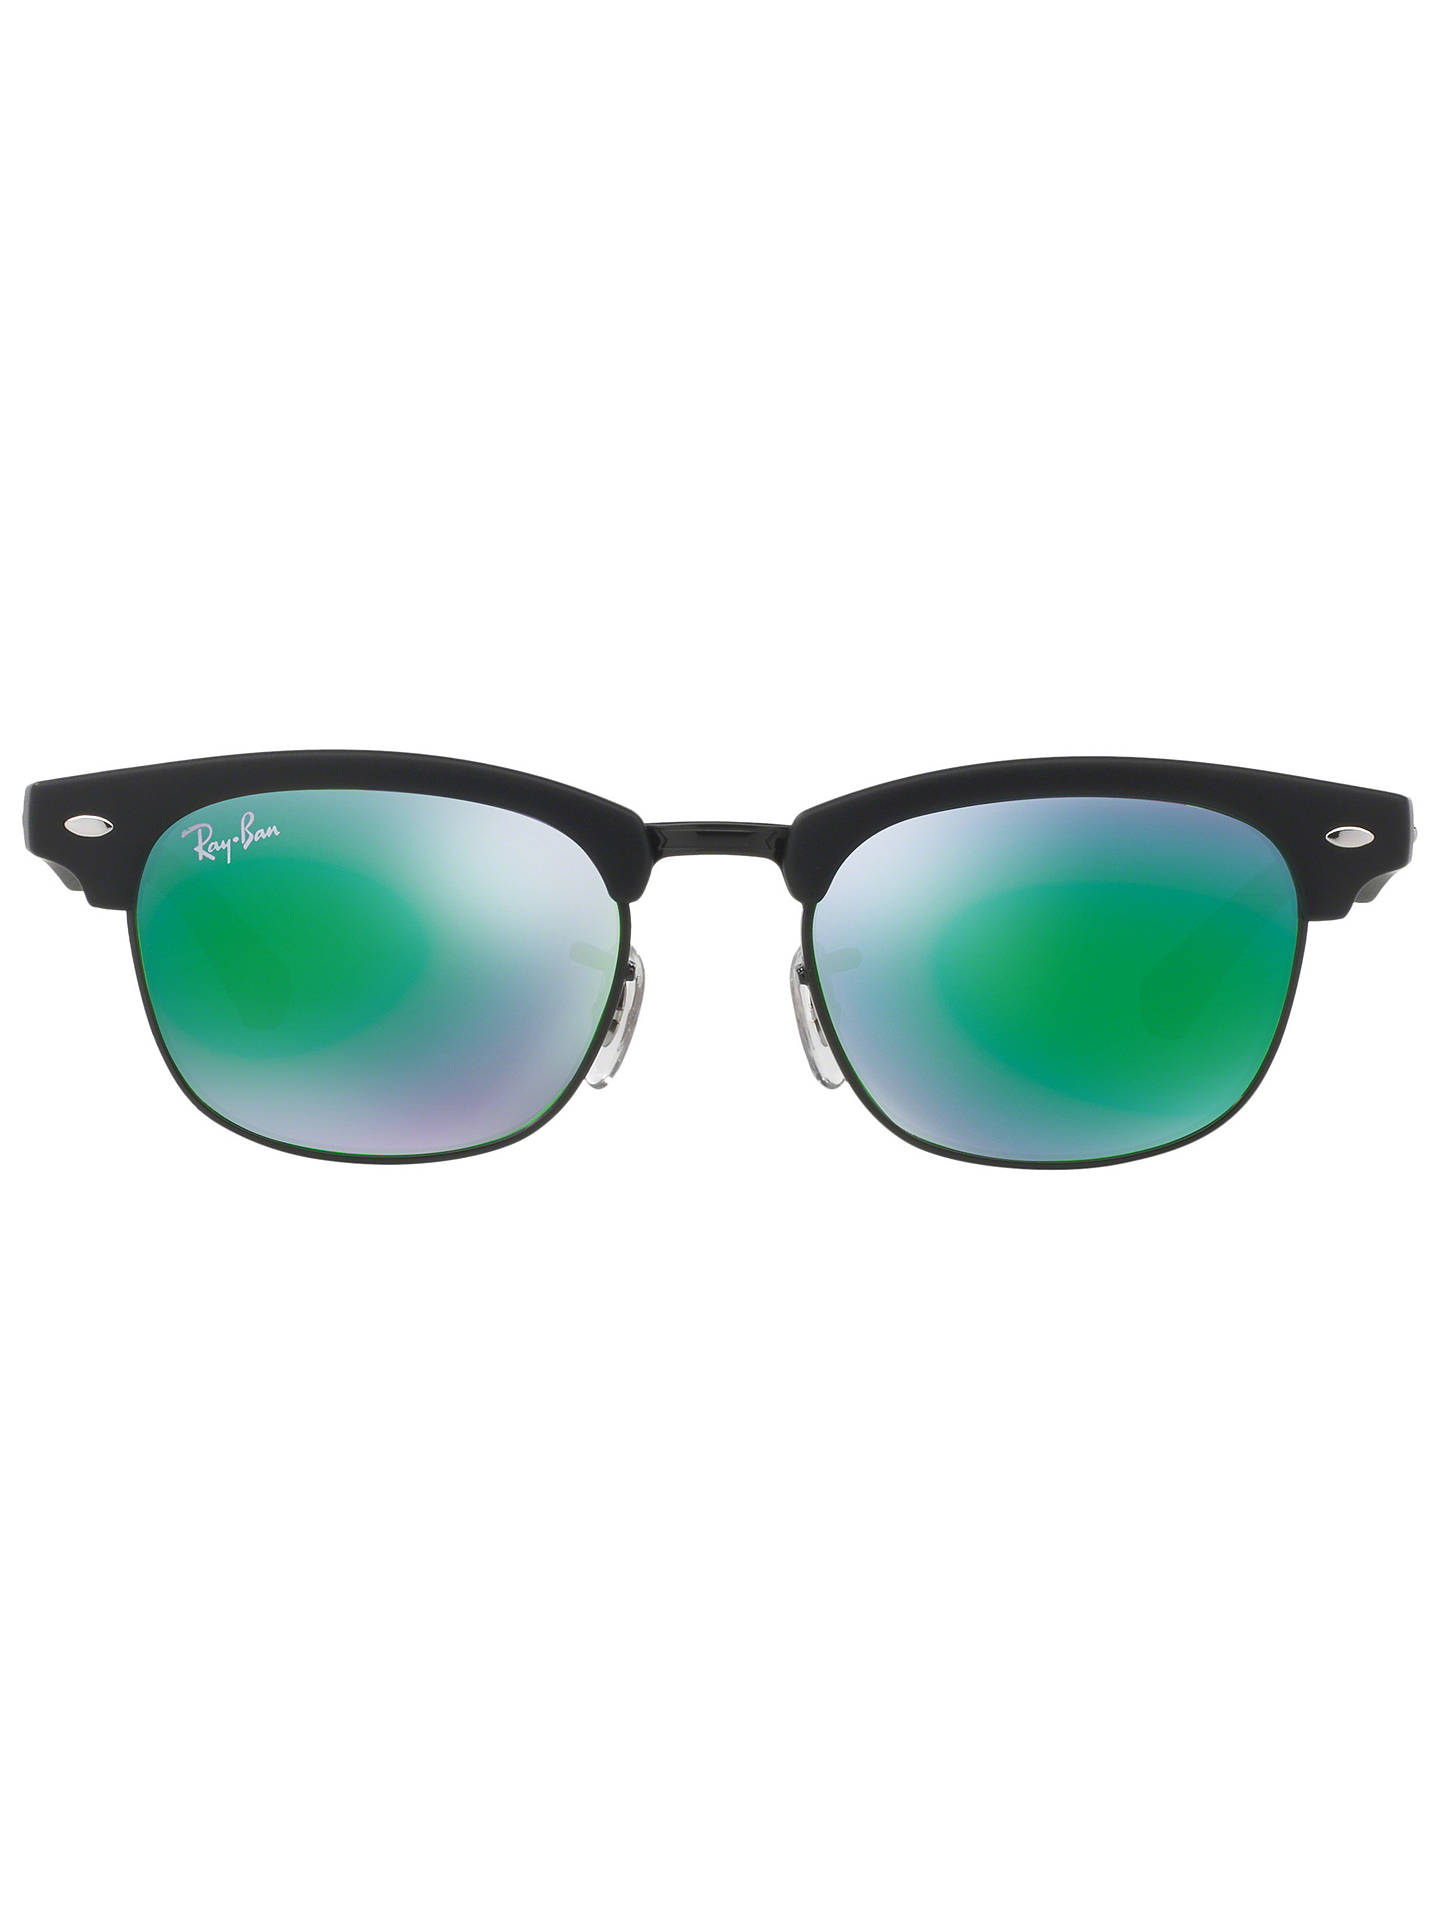 95d497993c Ray-Ban Junior RJ9050S Clubmaster Sunglasses at John Lewis   Partners